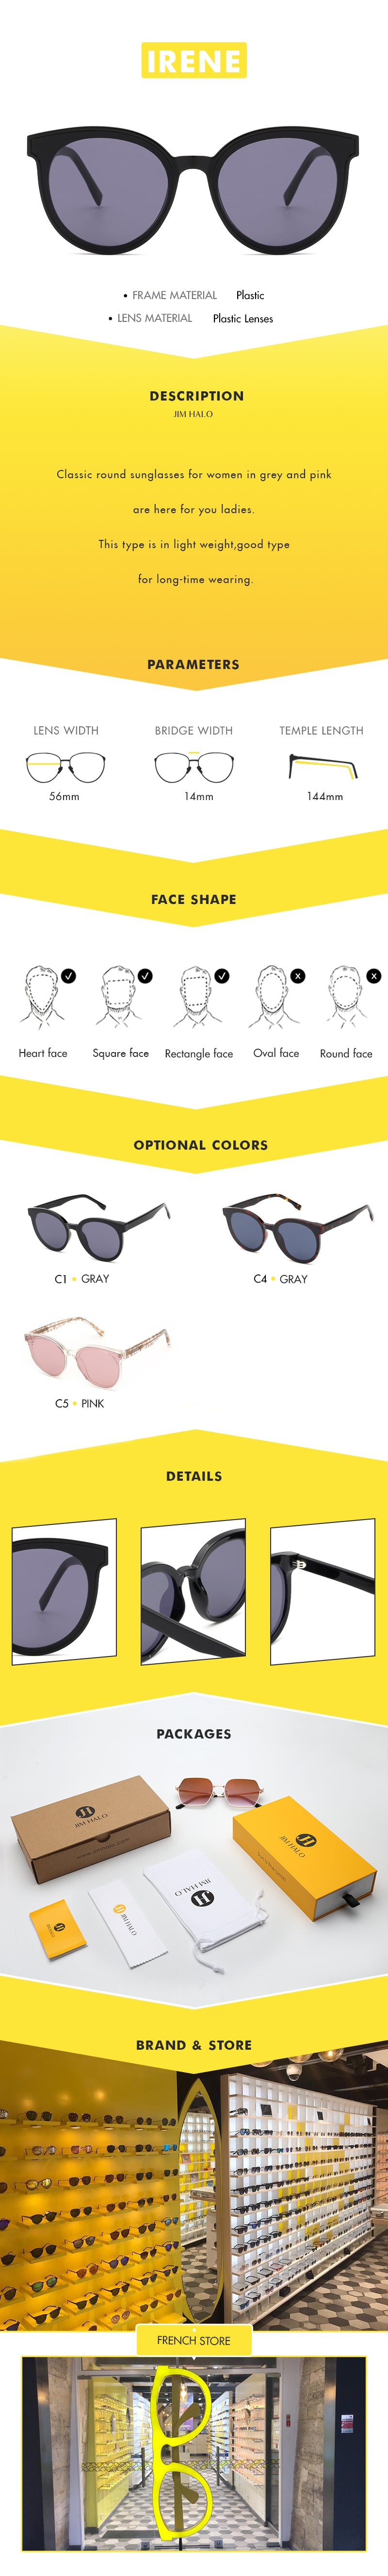 Classic round sunglasses for women in grey and pink are here for you ladies. This type is in light weight,good type for long-time wearing.